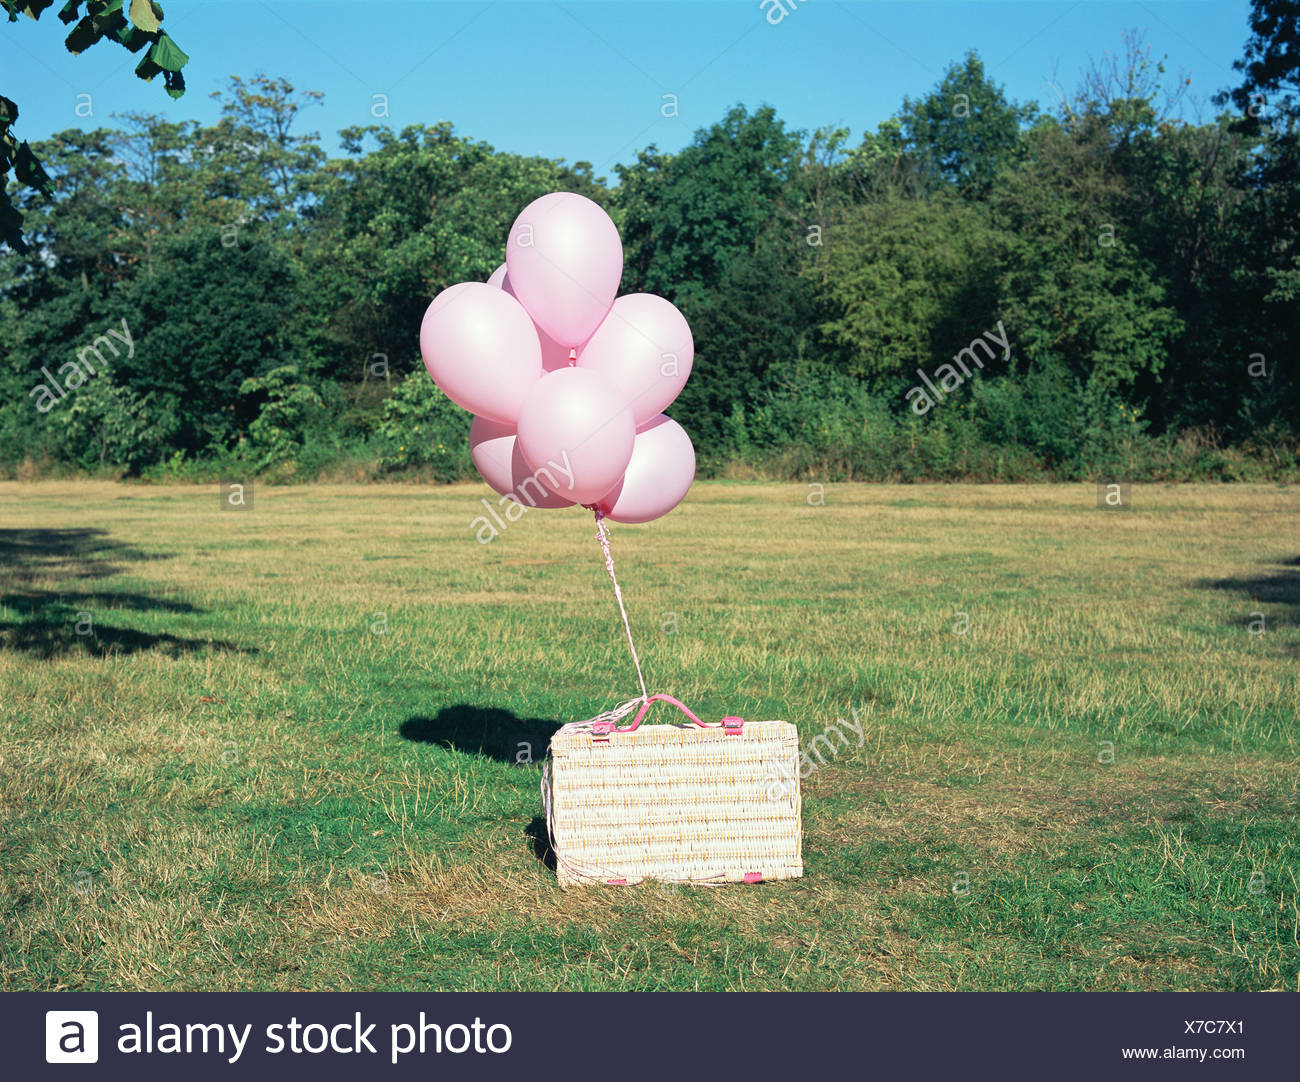 Balloons tied to a picnic basket - Stock Image